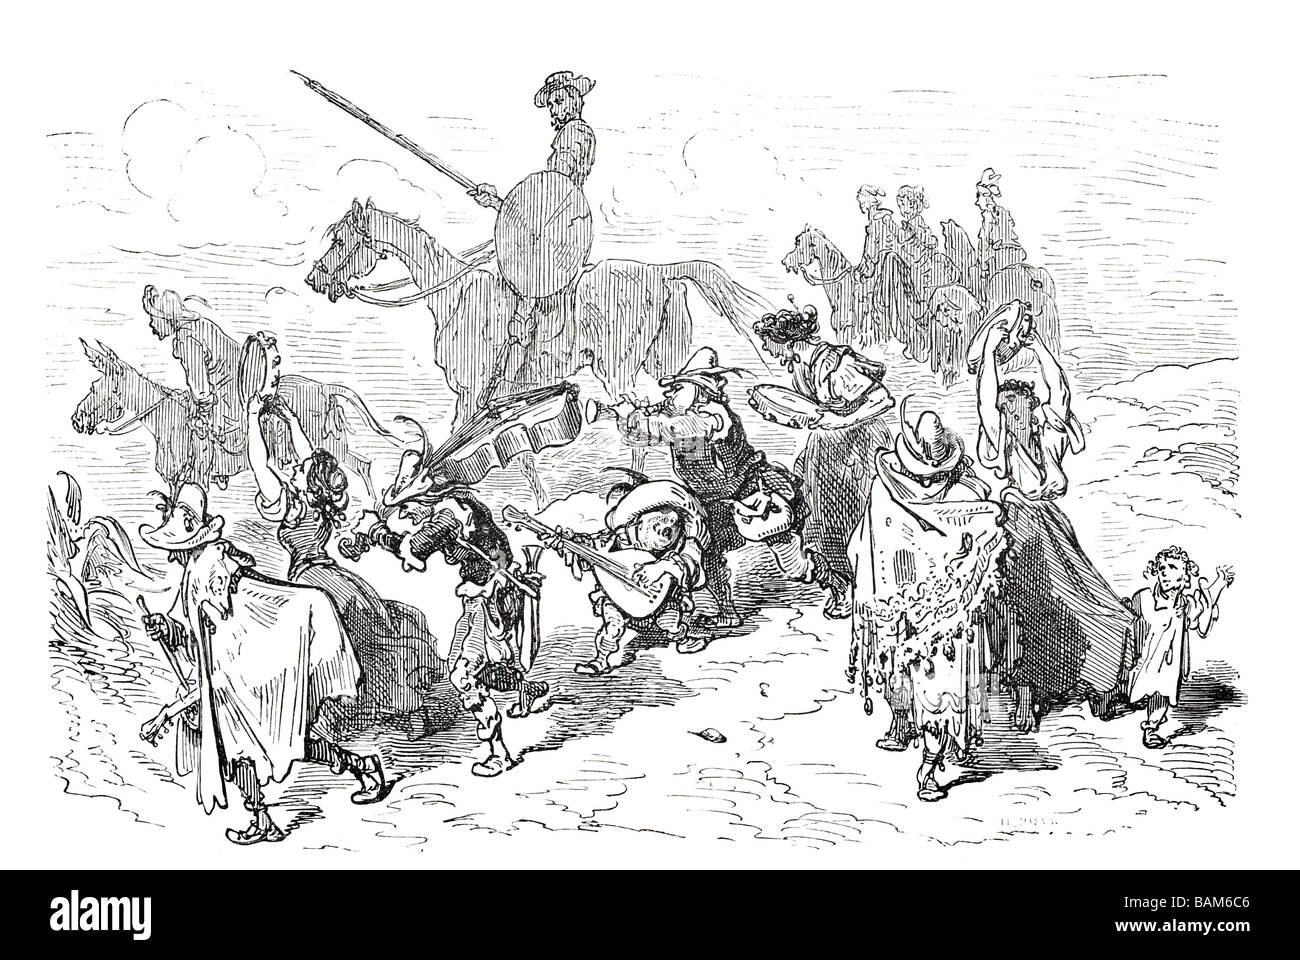 chapter XX 20 twenty Don quixote spanish novel Alonso Quixano Cervantes literature quest Stock Photo